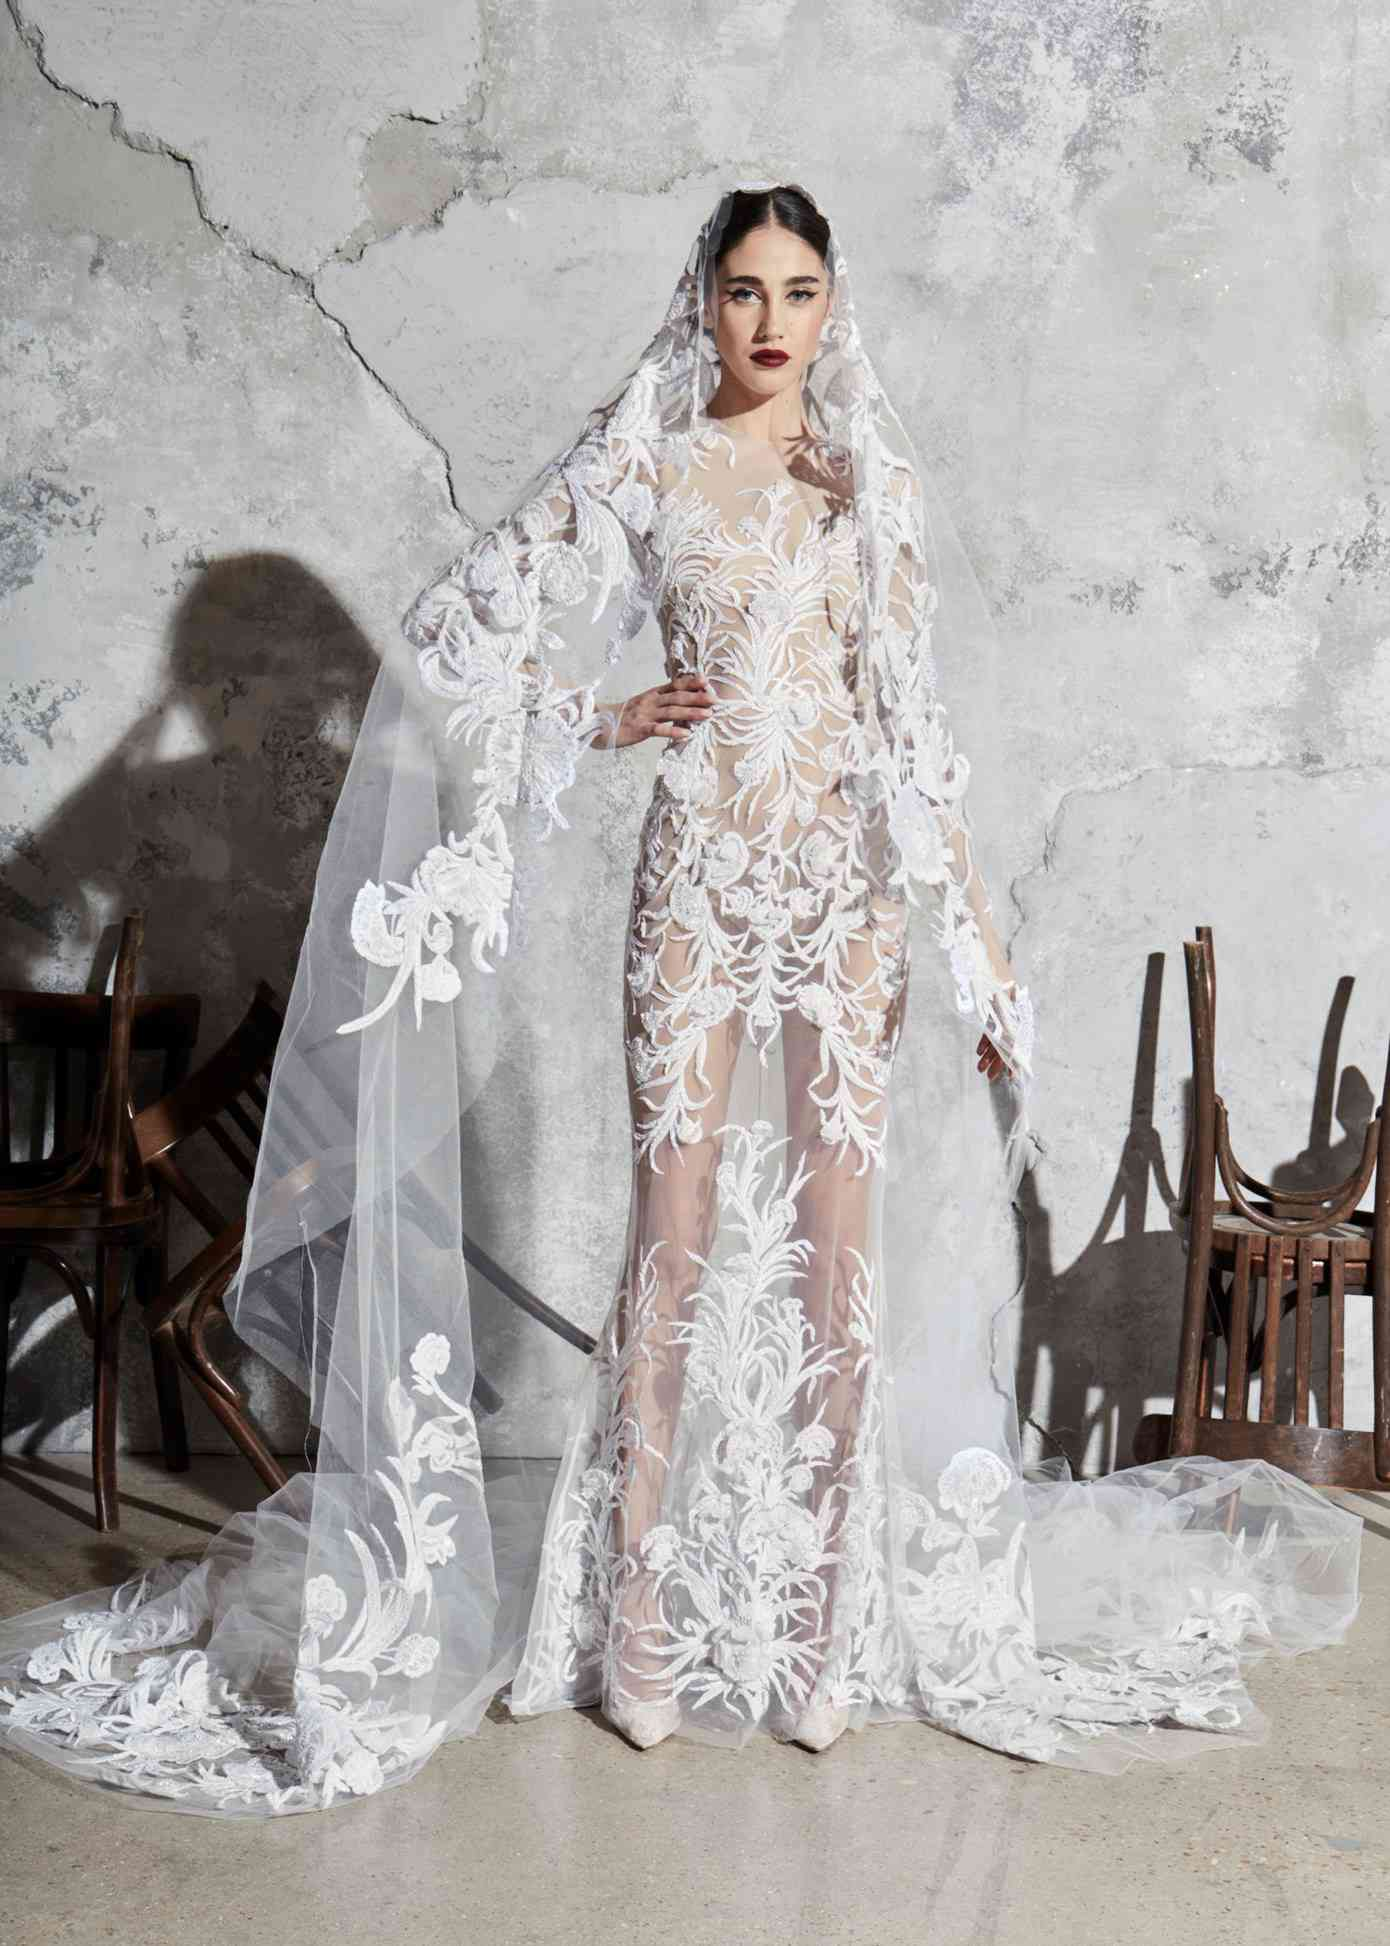 Model in allover illusion tulle dress with beaded embroidery and a matching veil